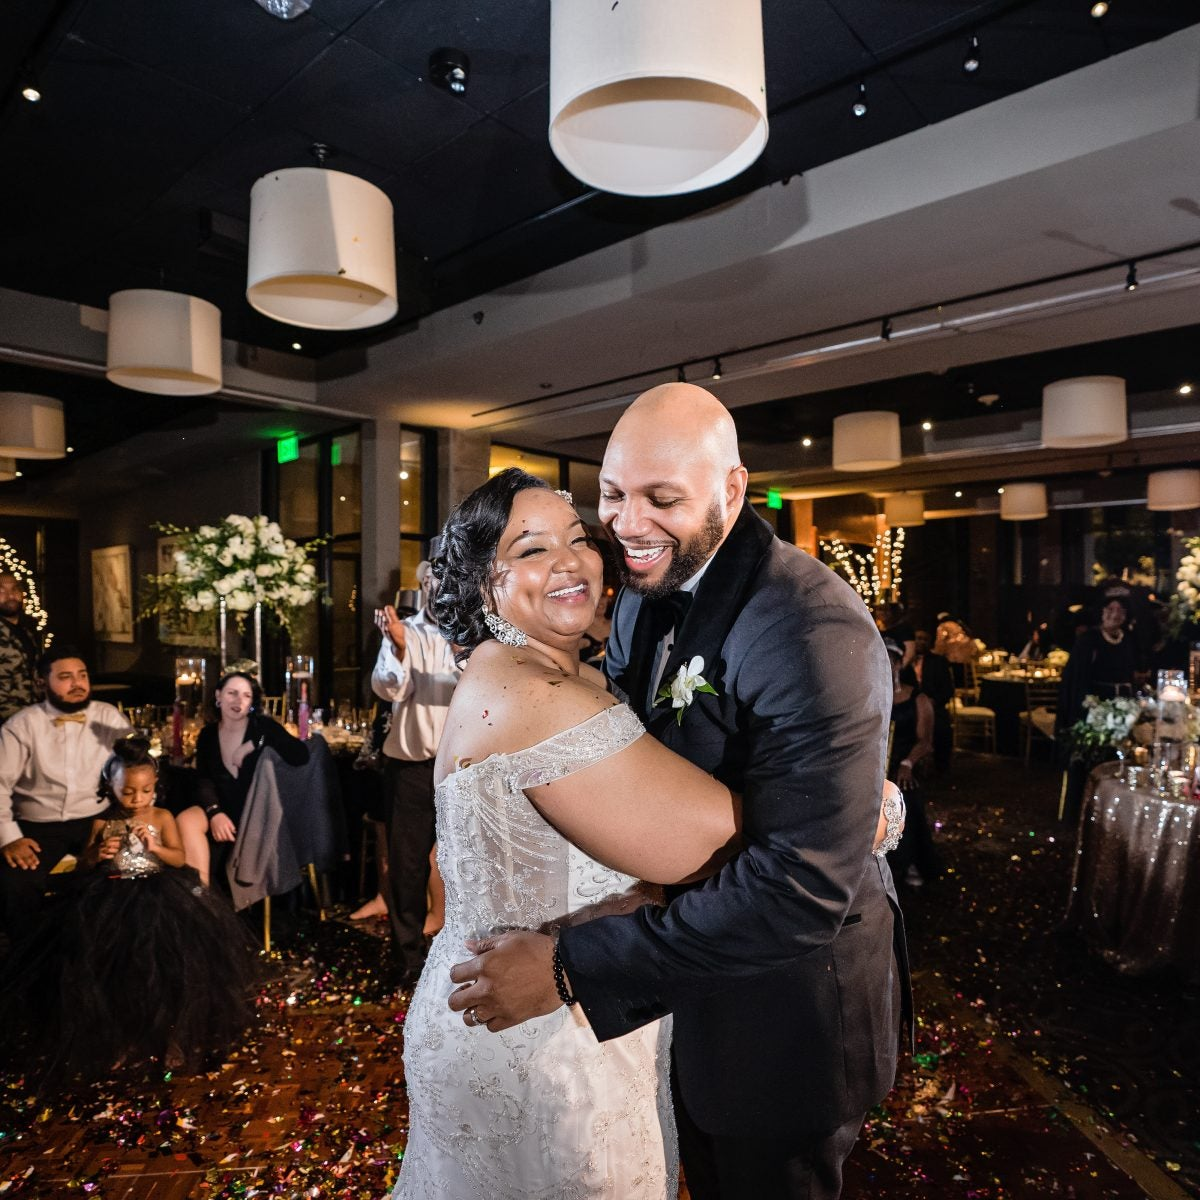 Bridal Bliss: Moneca And Randall Danced The Night Away At Their New Year's Eve Wedding